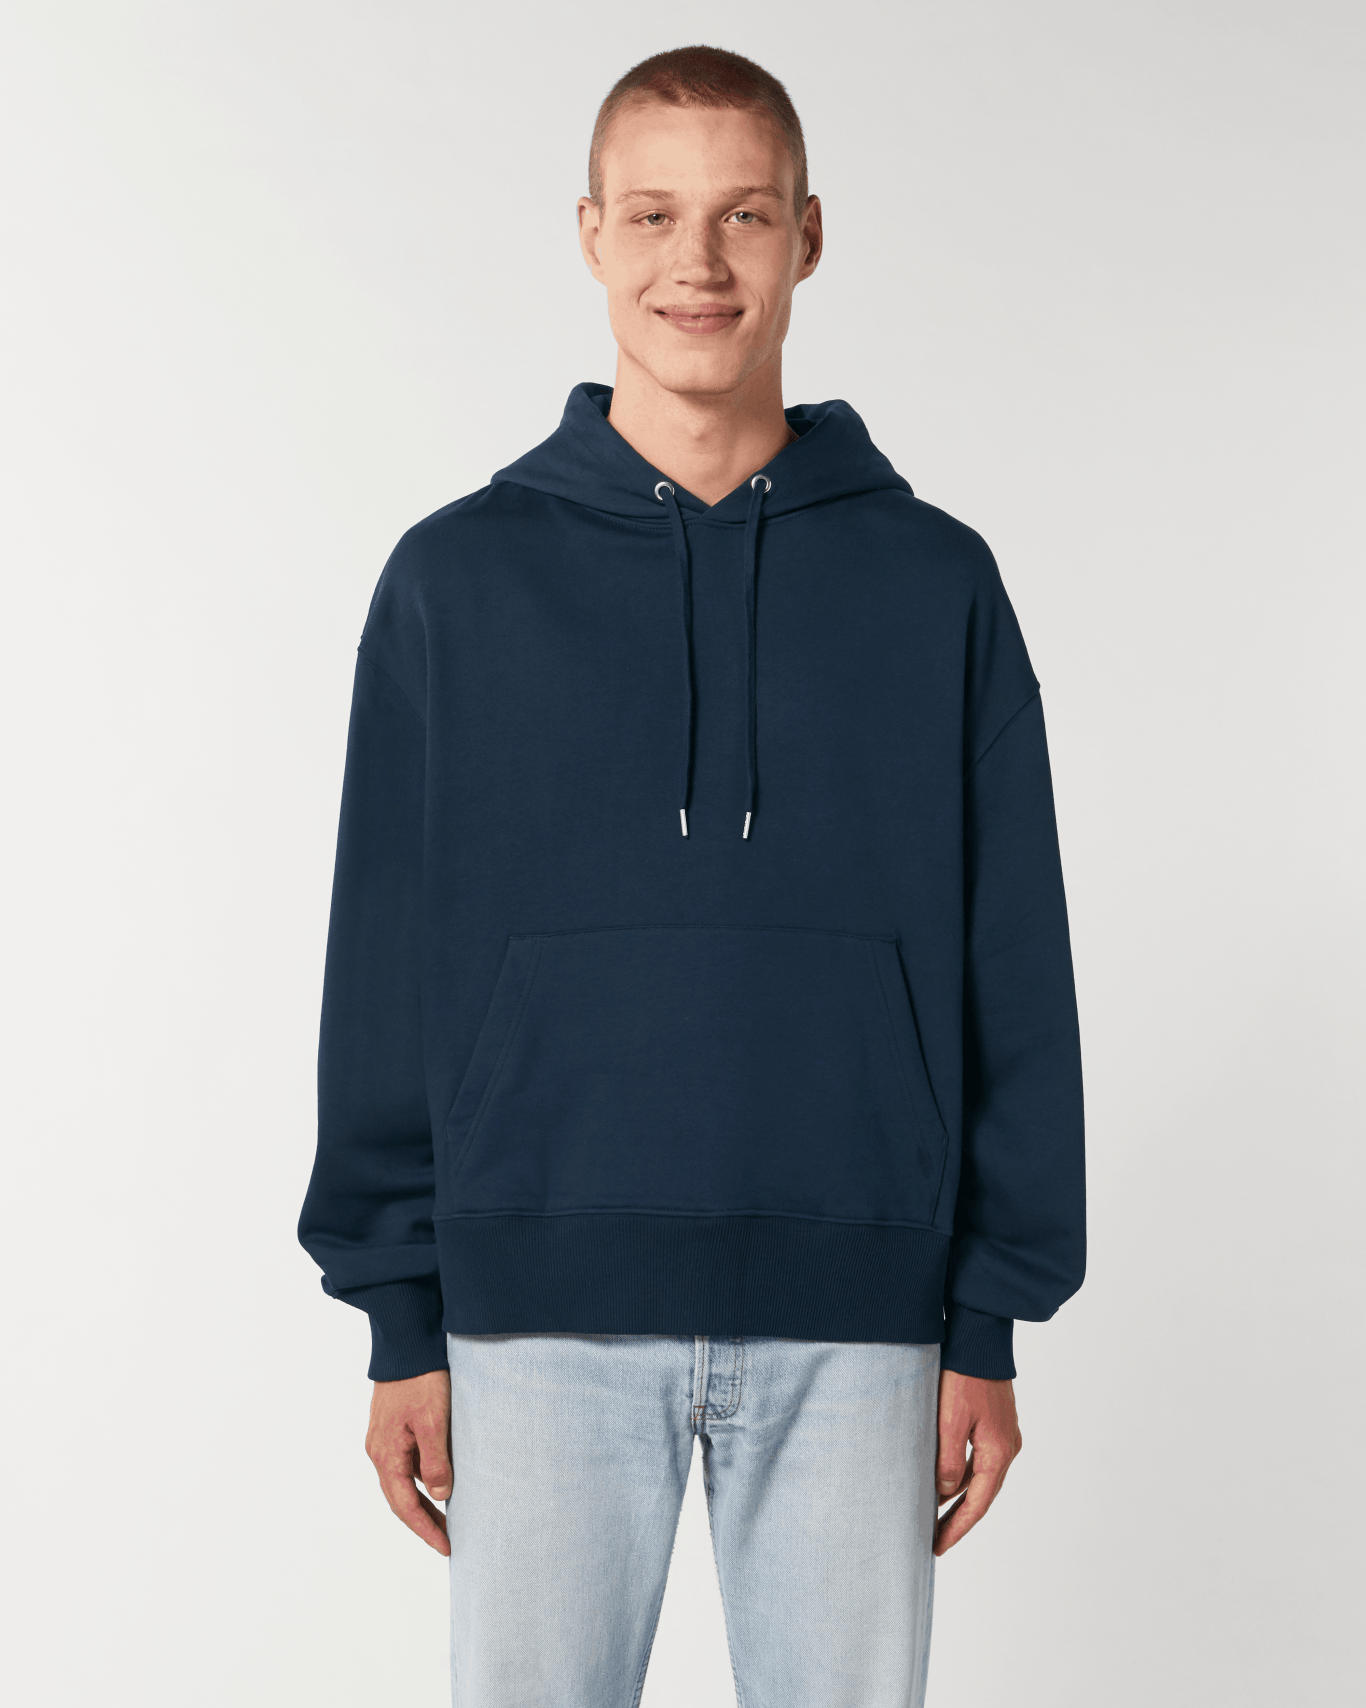 LOOK FOR THE GOOD - Pullover hoodie for men